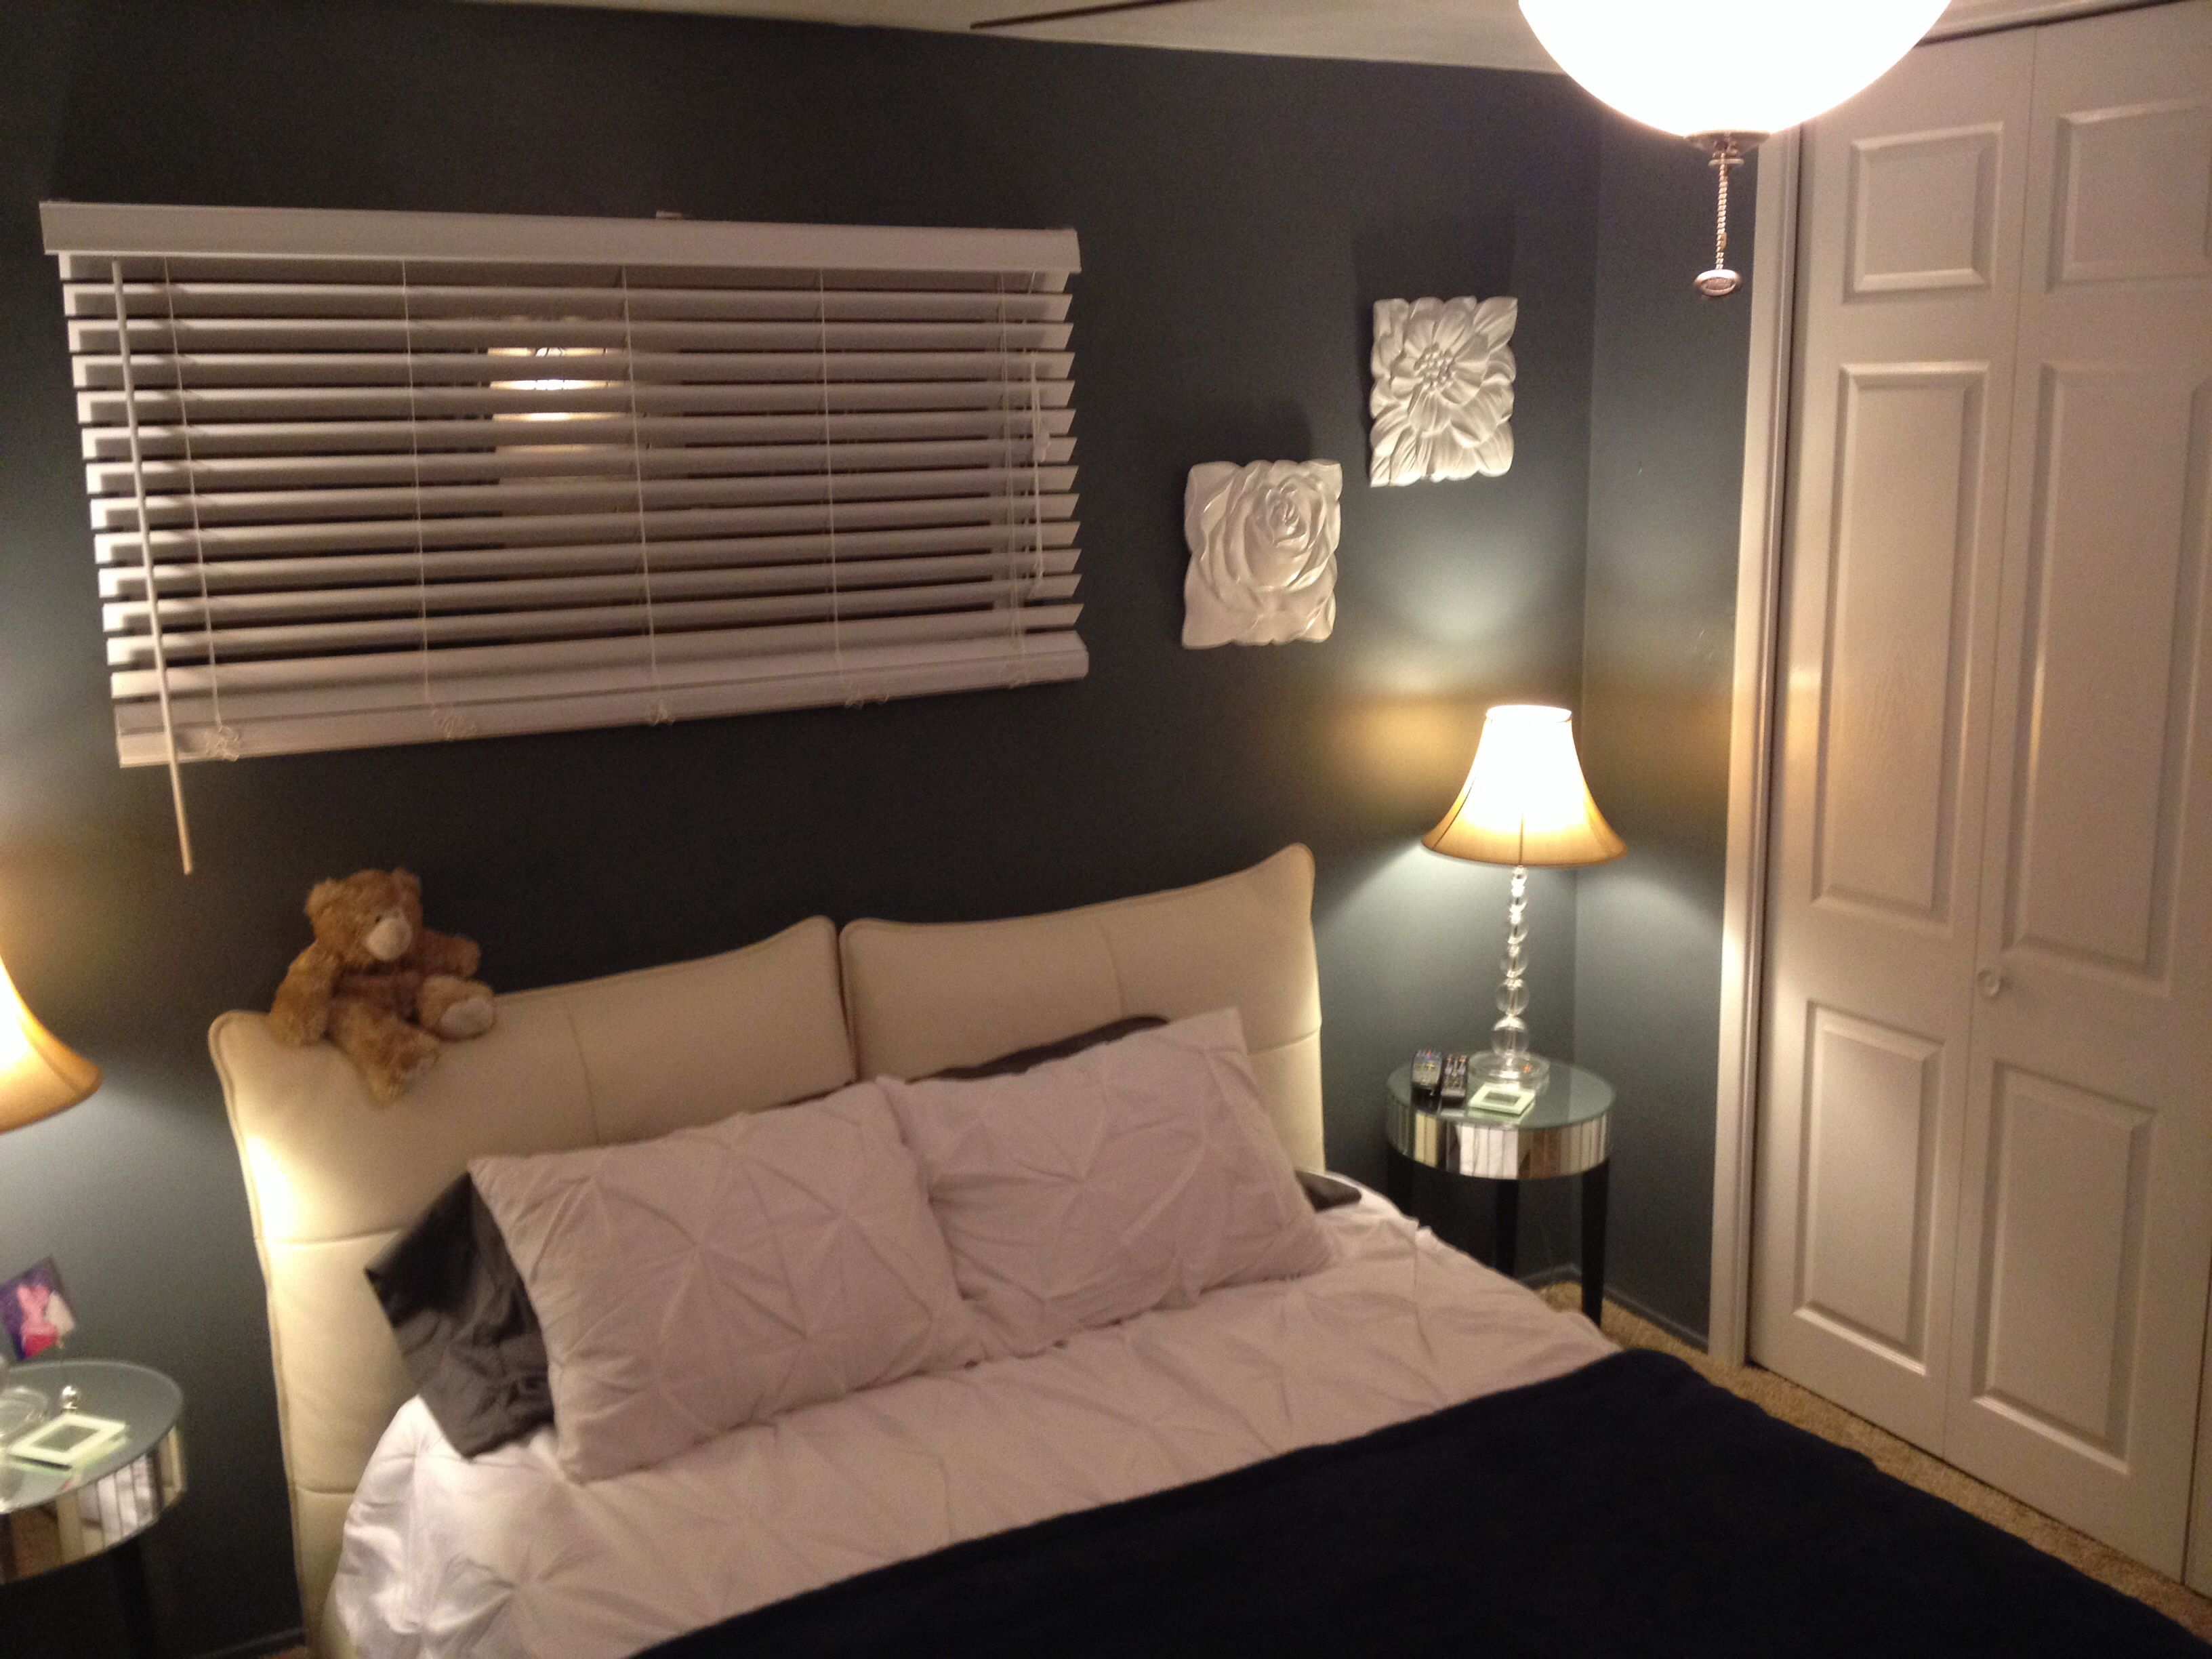 pin by leanne simmons on bedrooms work space modern on lowes paint colors interior id=85723